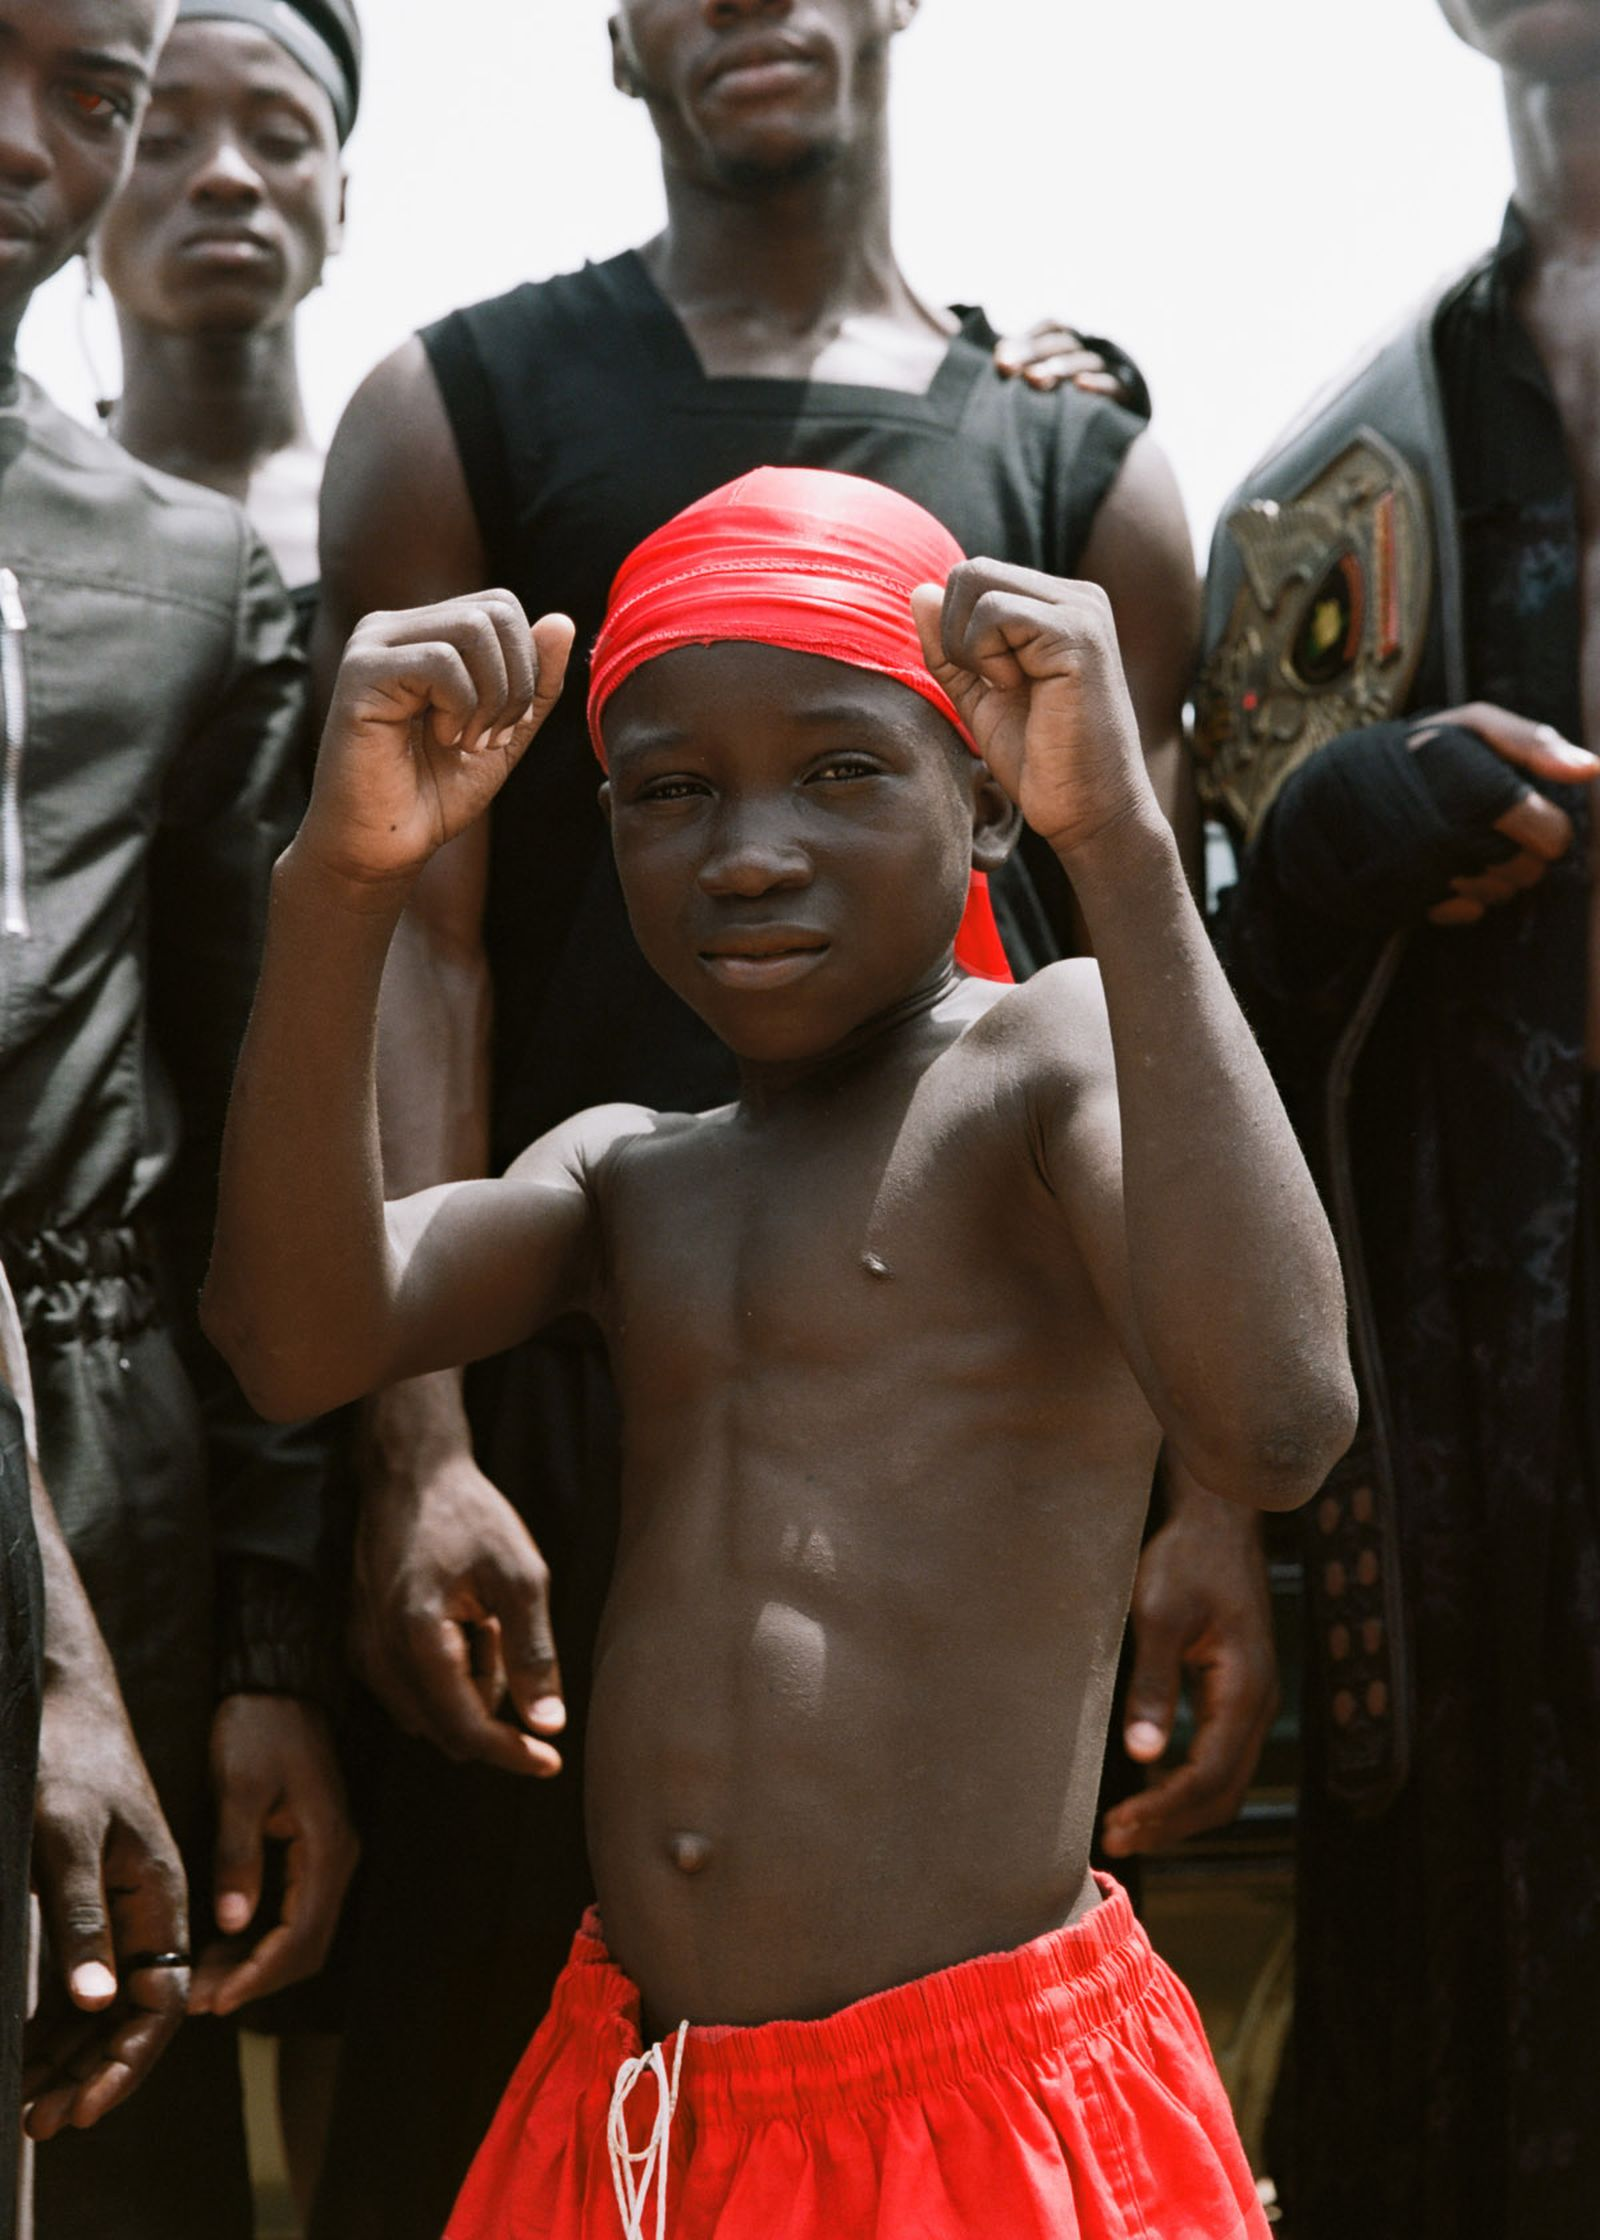 ROBERT TAGOE Jumpsuit RICK OWENS KID Shorts and durag STYLIST'S OWN PHILIP ESHUN Tank top and shorts BURBERRY